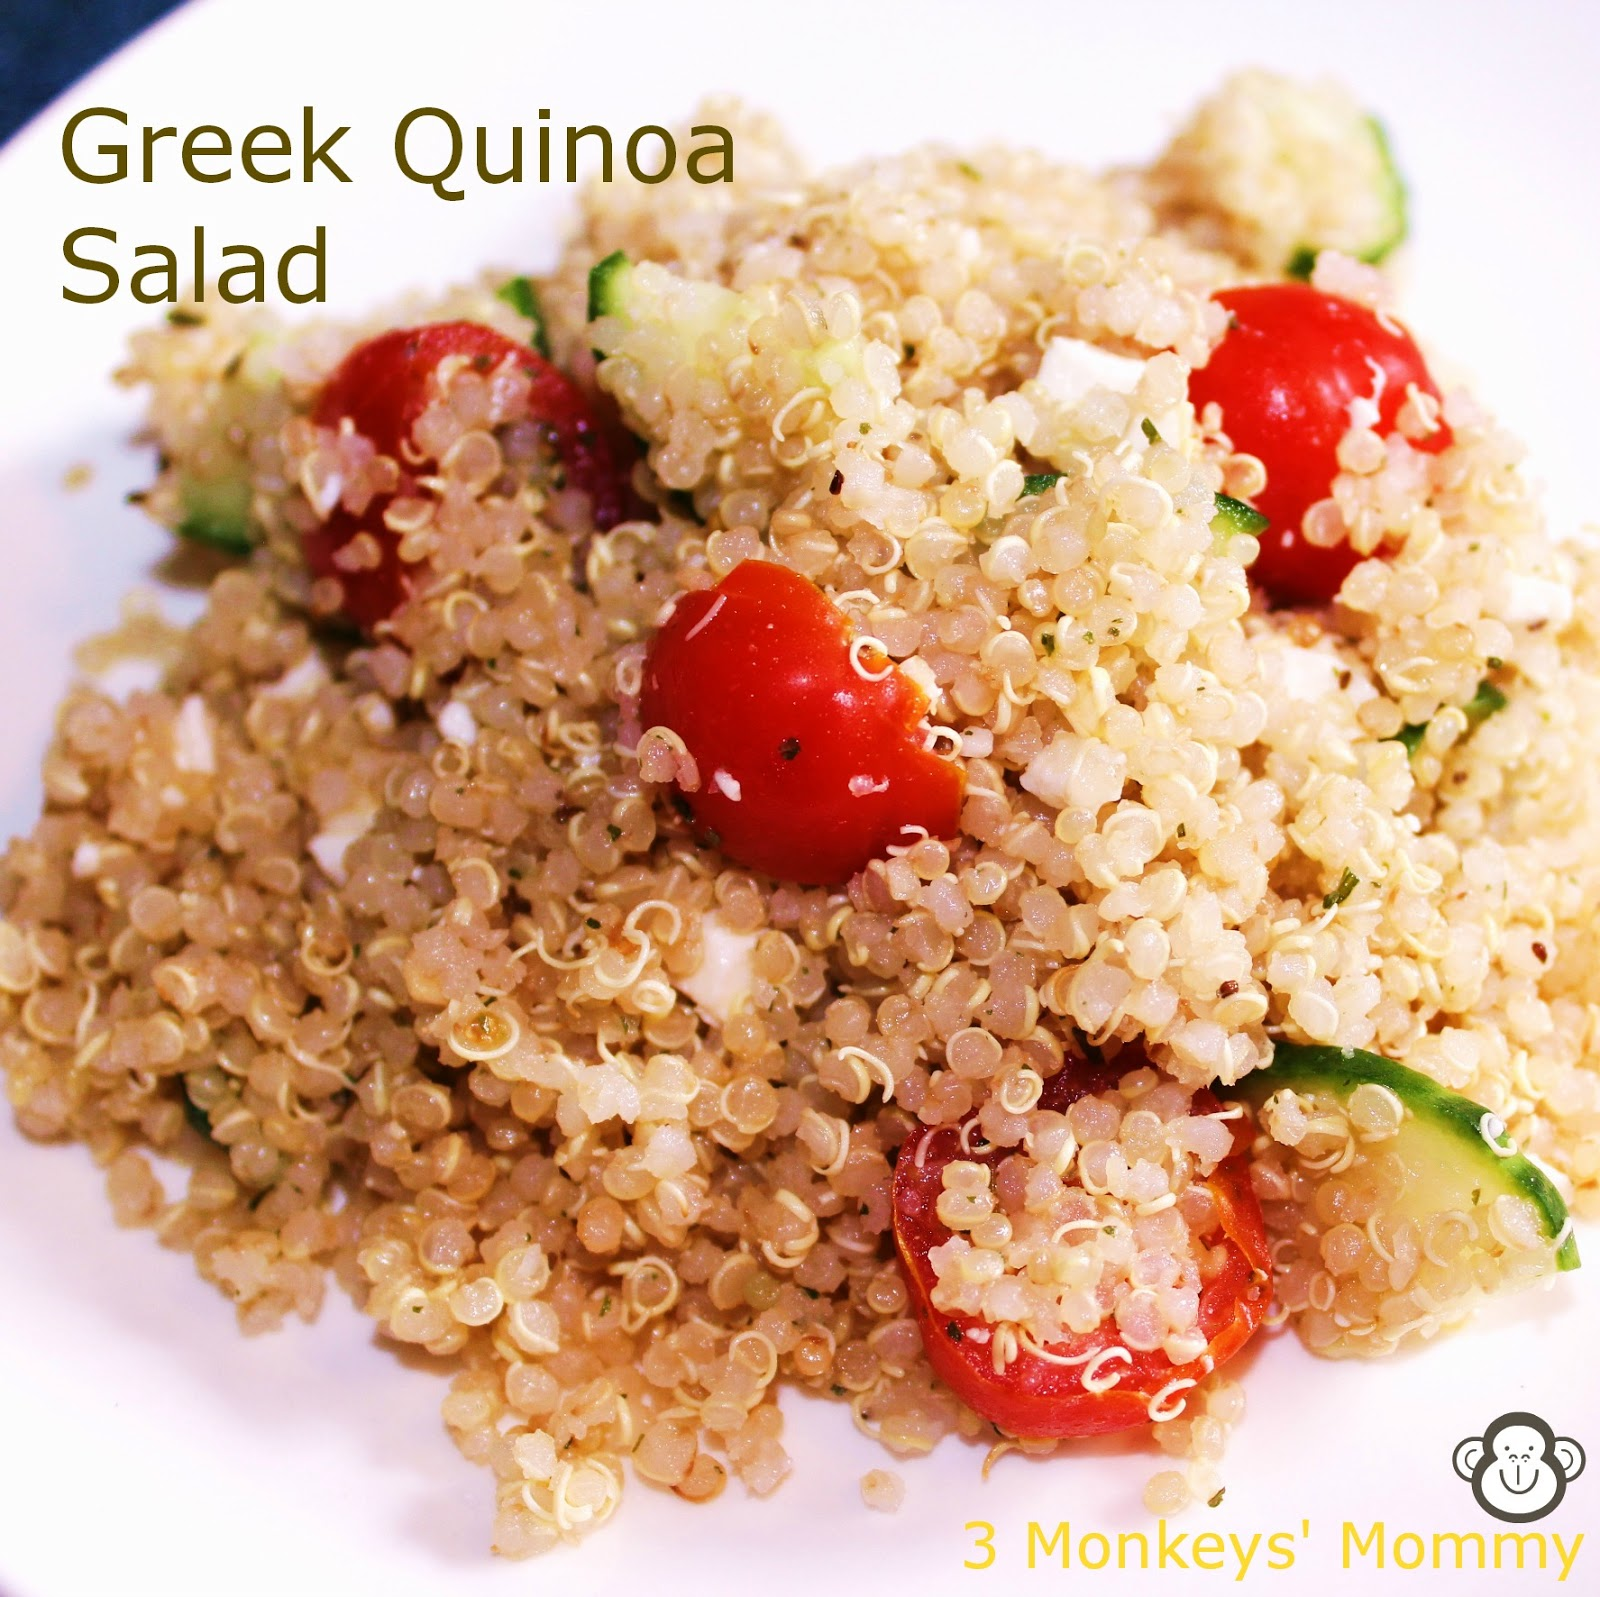 Monkeys' Mommy: Summer Salads Series: Greek Quinoa Salad